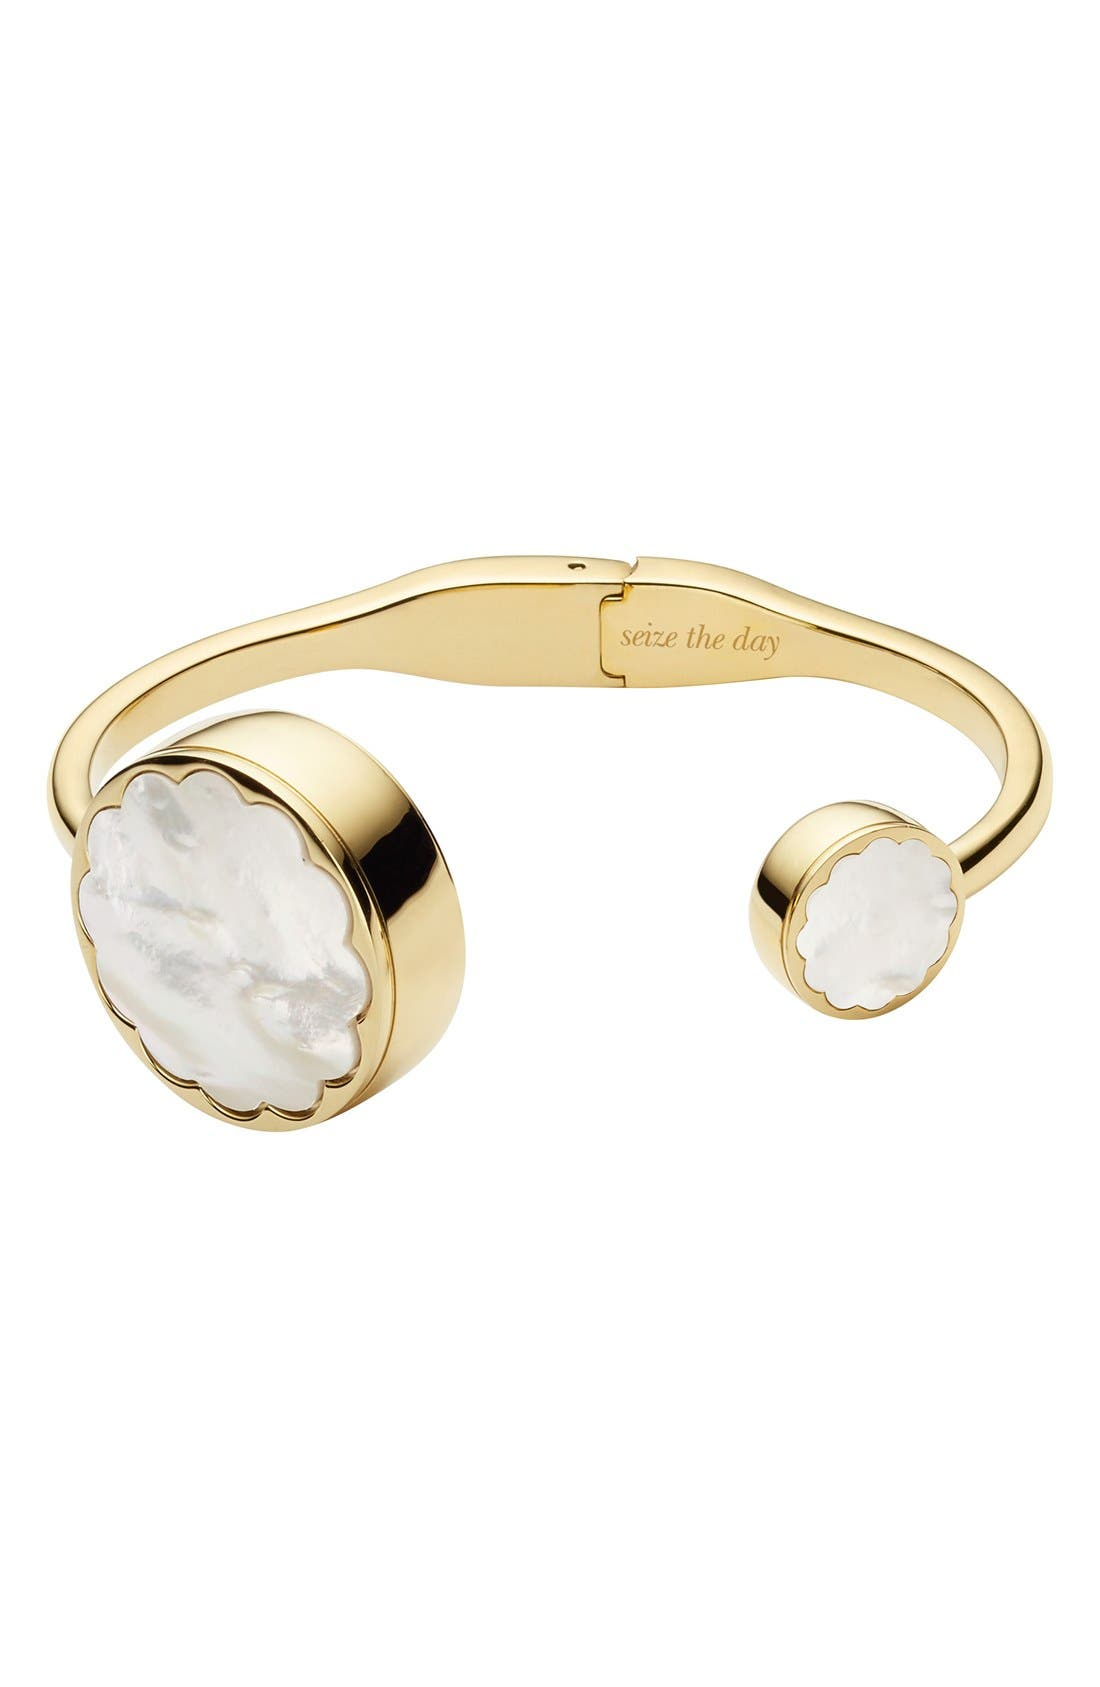 KATE SPADE NEW YORK mother of pearl hinge